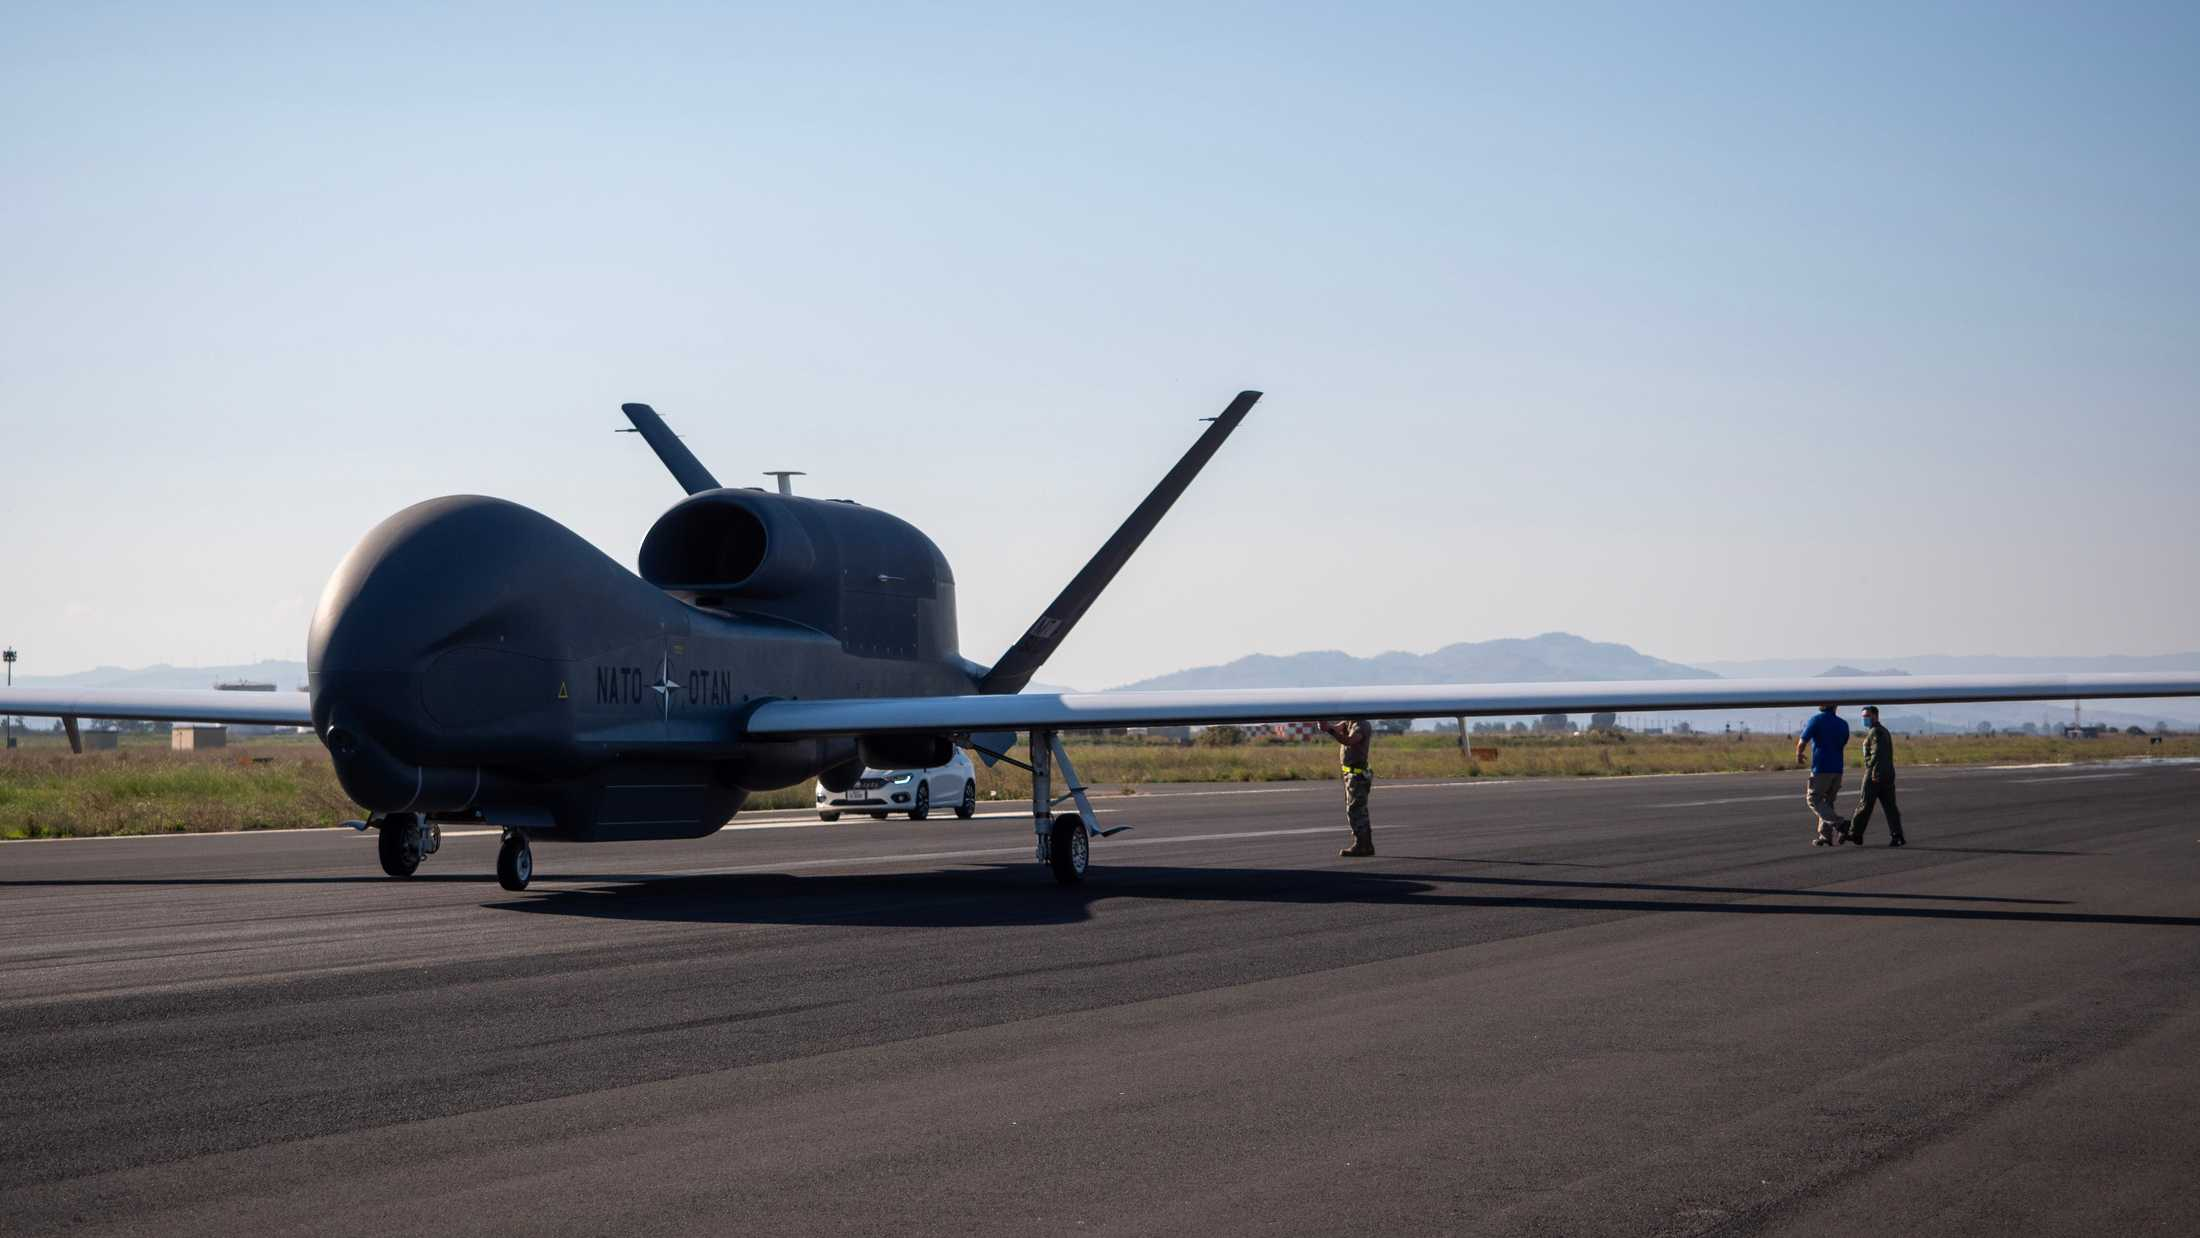 Fifth Phoenix aircraft arrives at the Alliance Ground Surveillance Main Operating Base. NATO